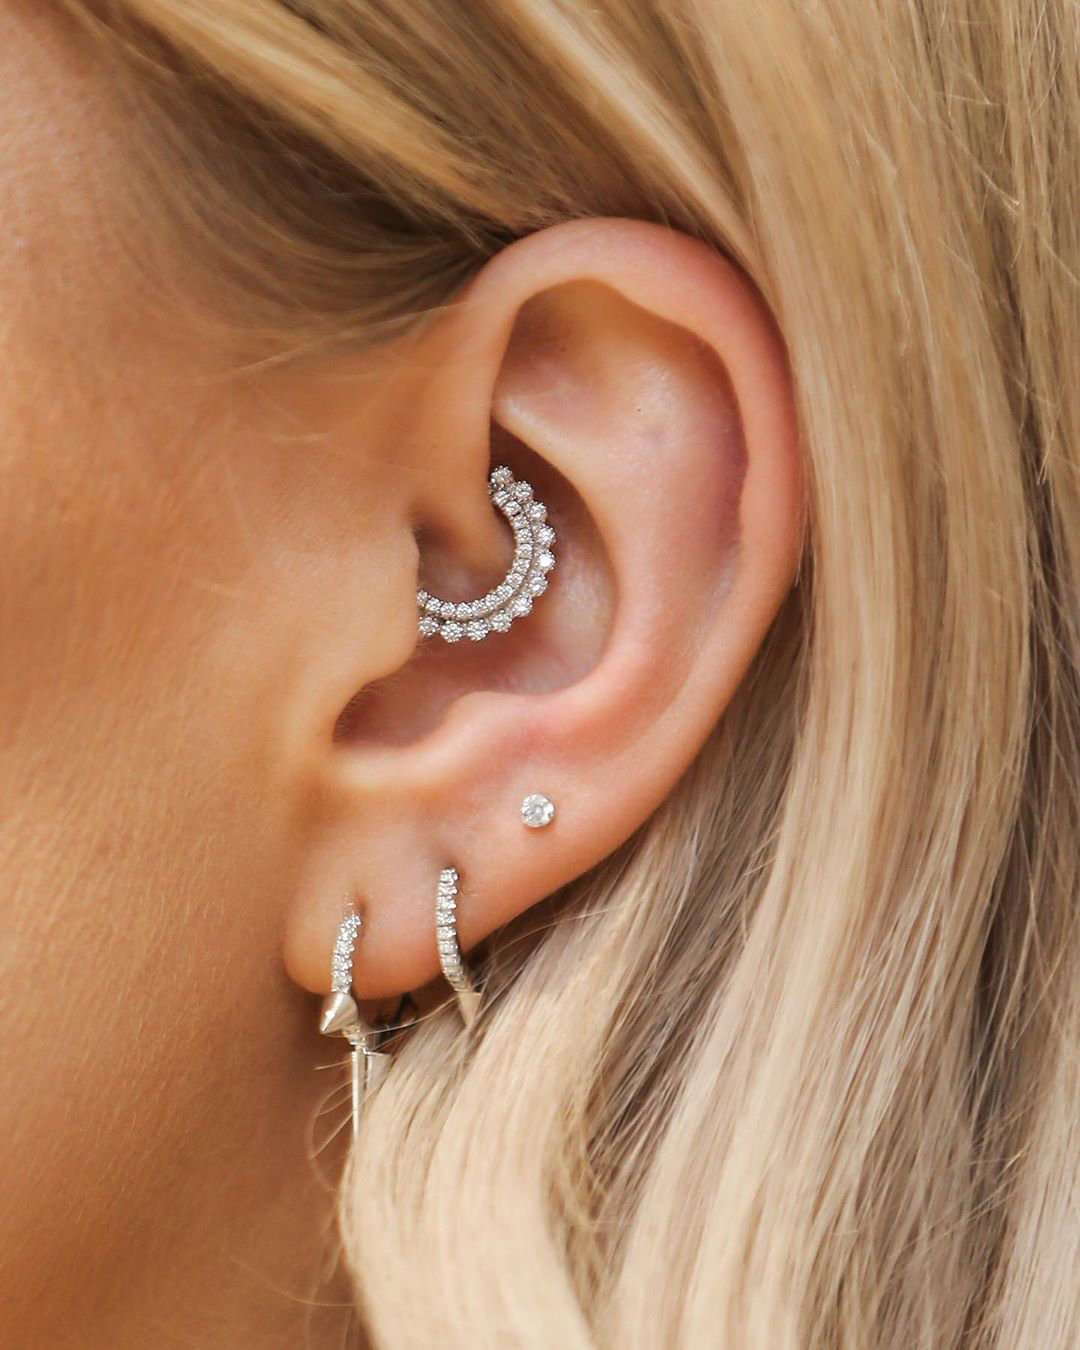 A Piercing Experts Guide to Creating Your Own Curated